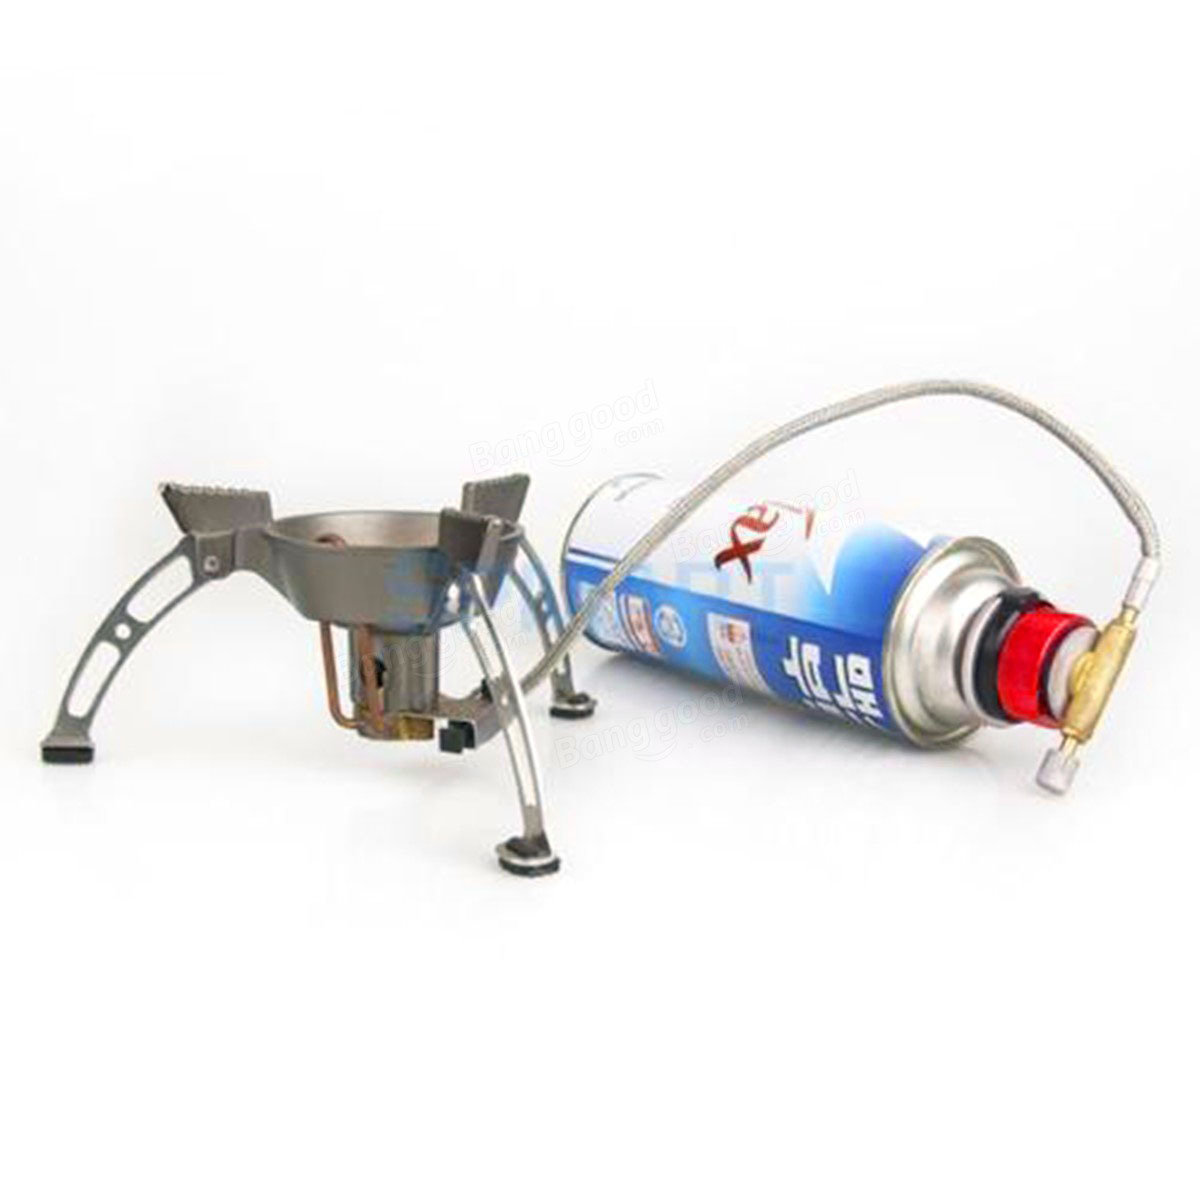 Camping Hiking Stove Converter Long-Typed Gas Bottle Adapter ...